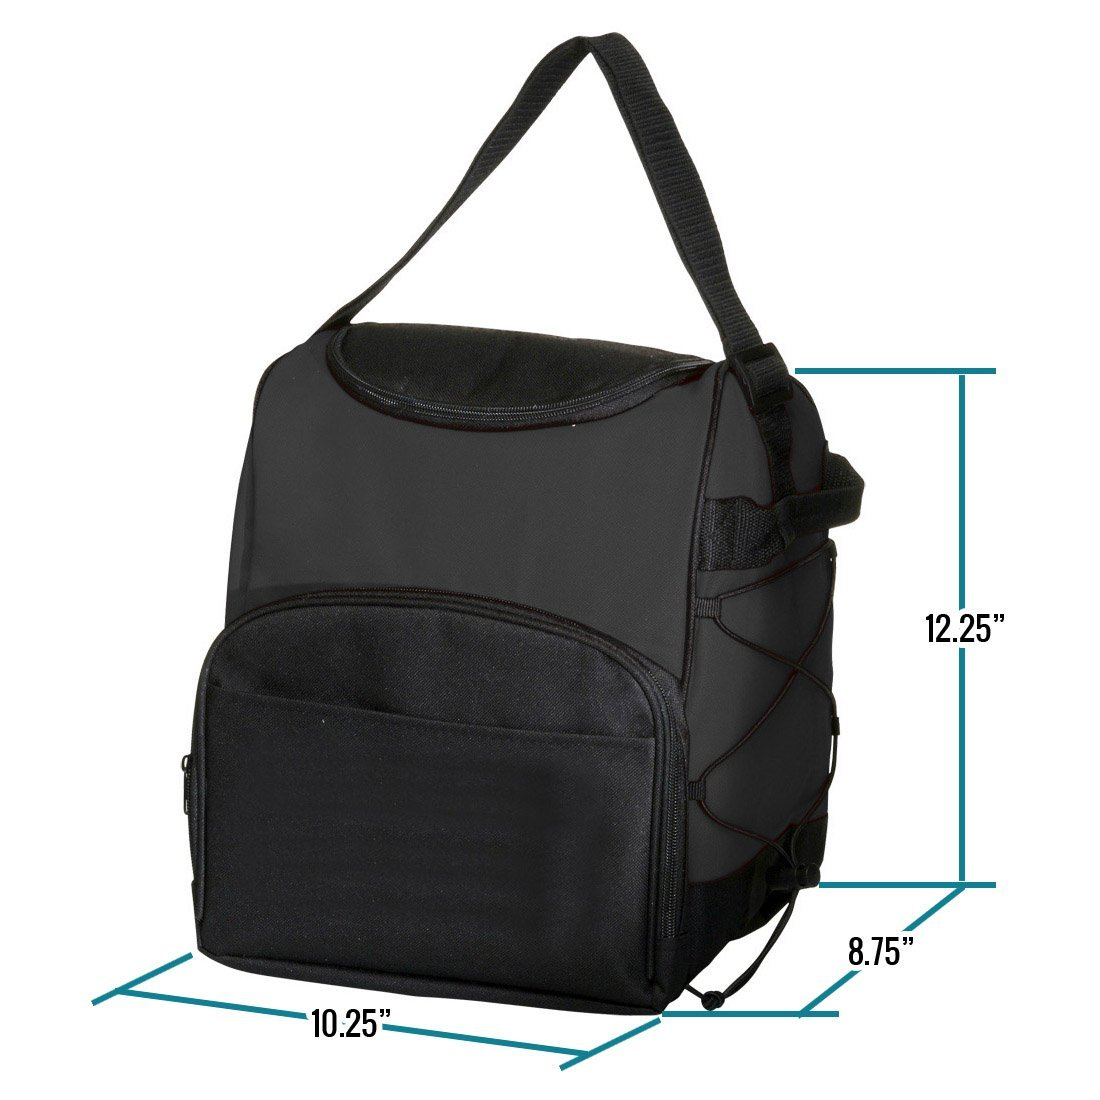 Extra Large Insulated Lunch Bag By Sacko Chatterbox